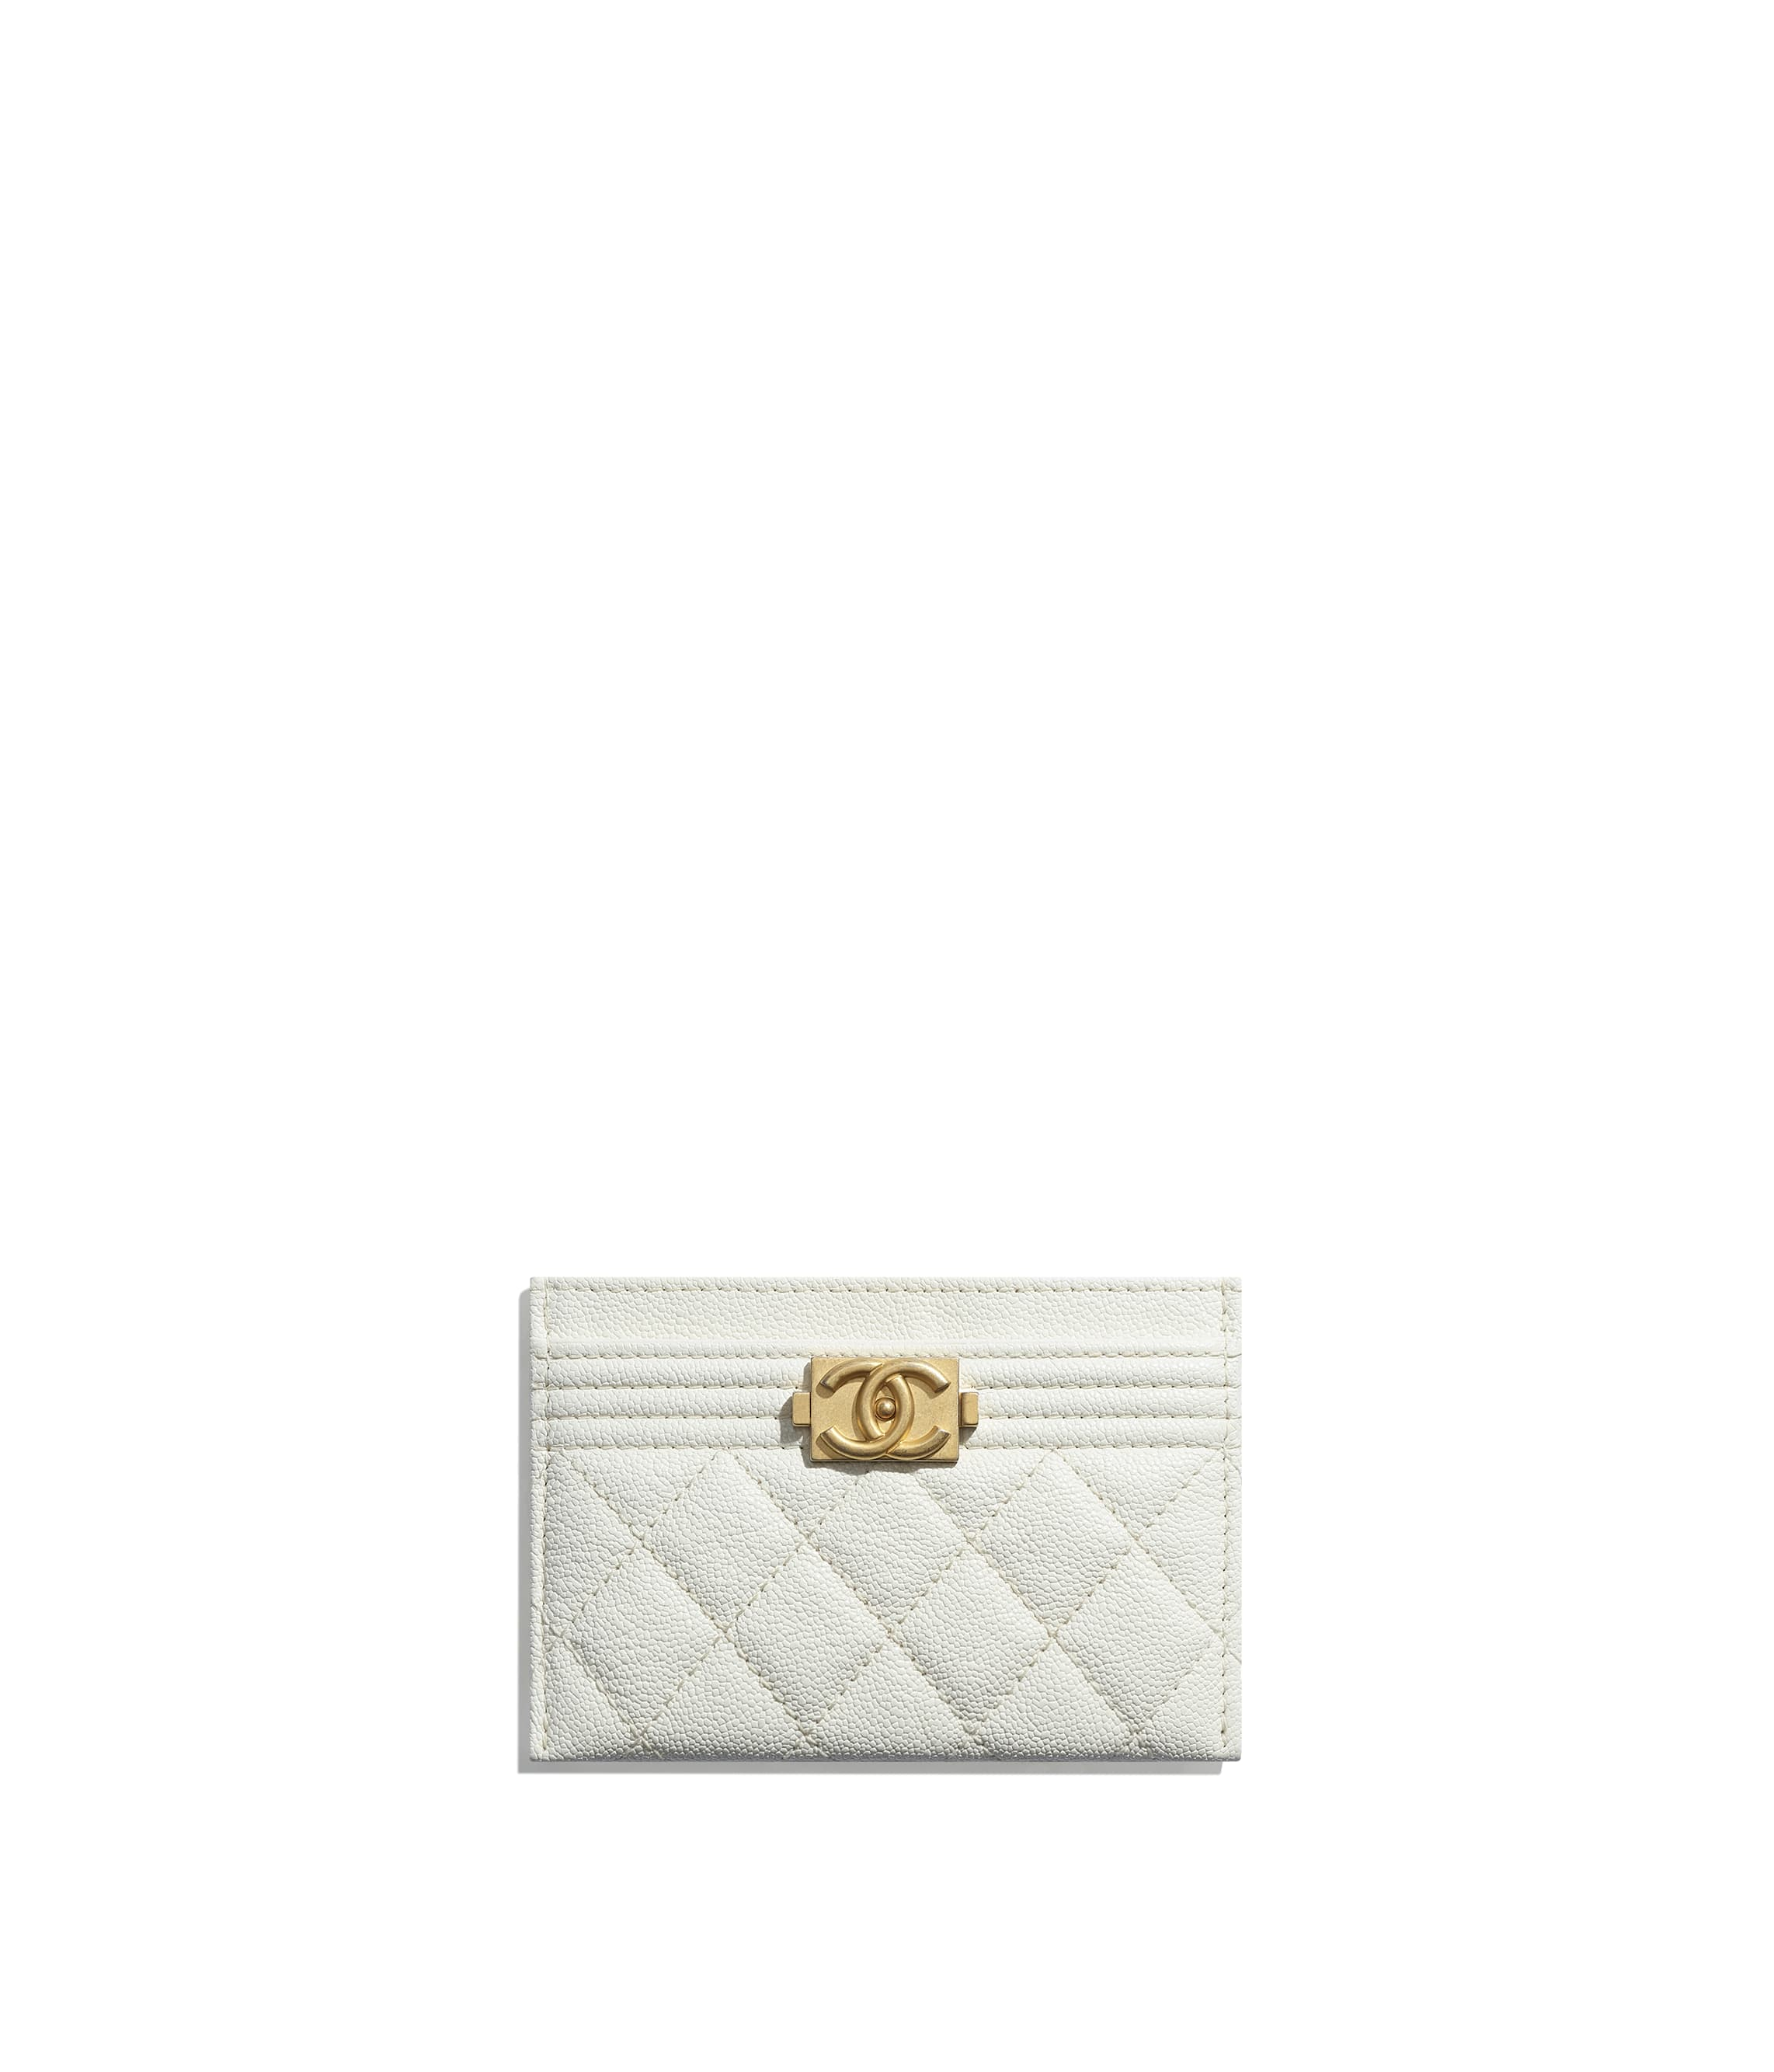 BOY CHANEL Card Holder